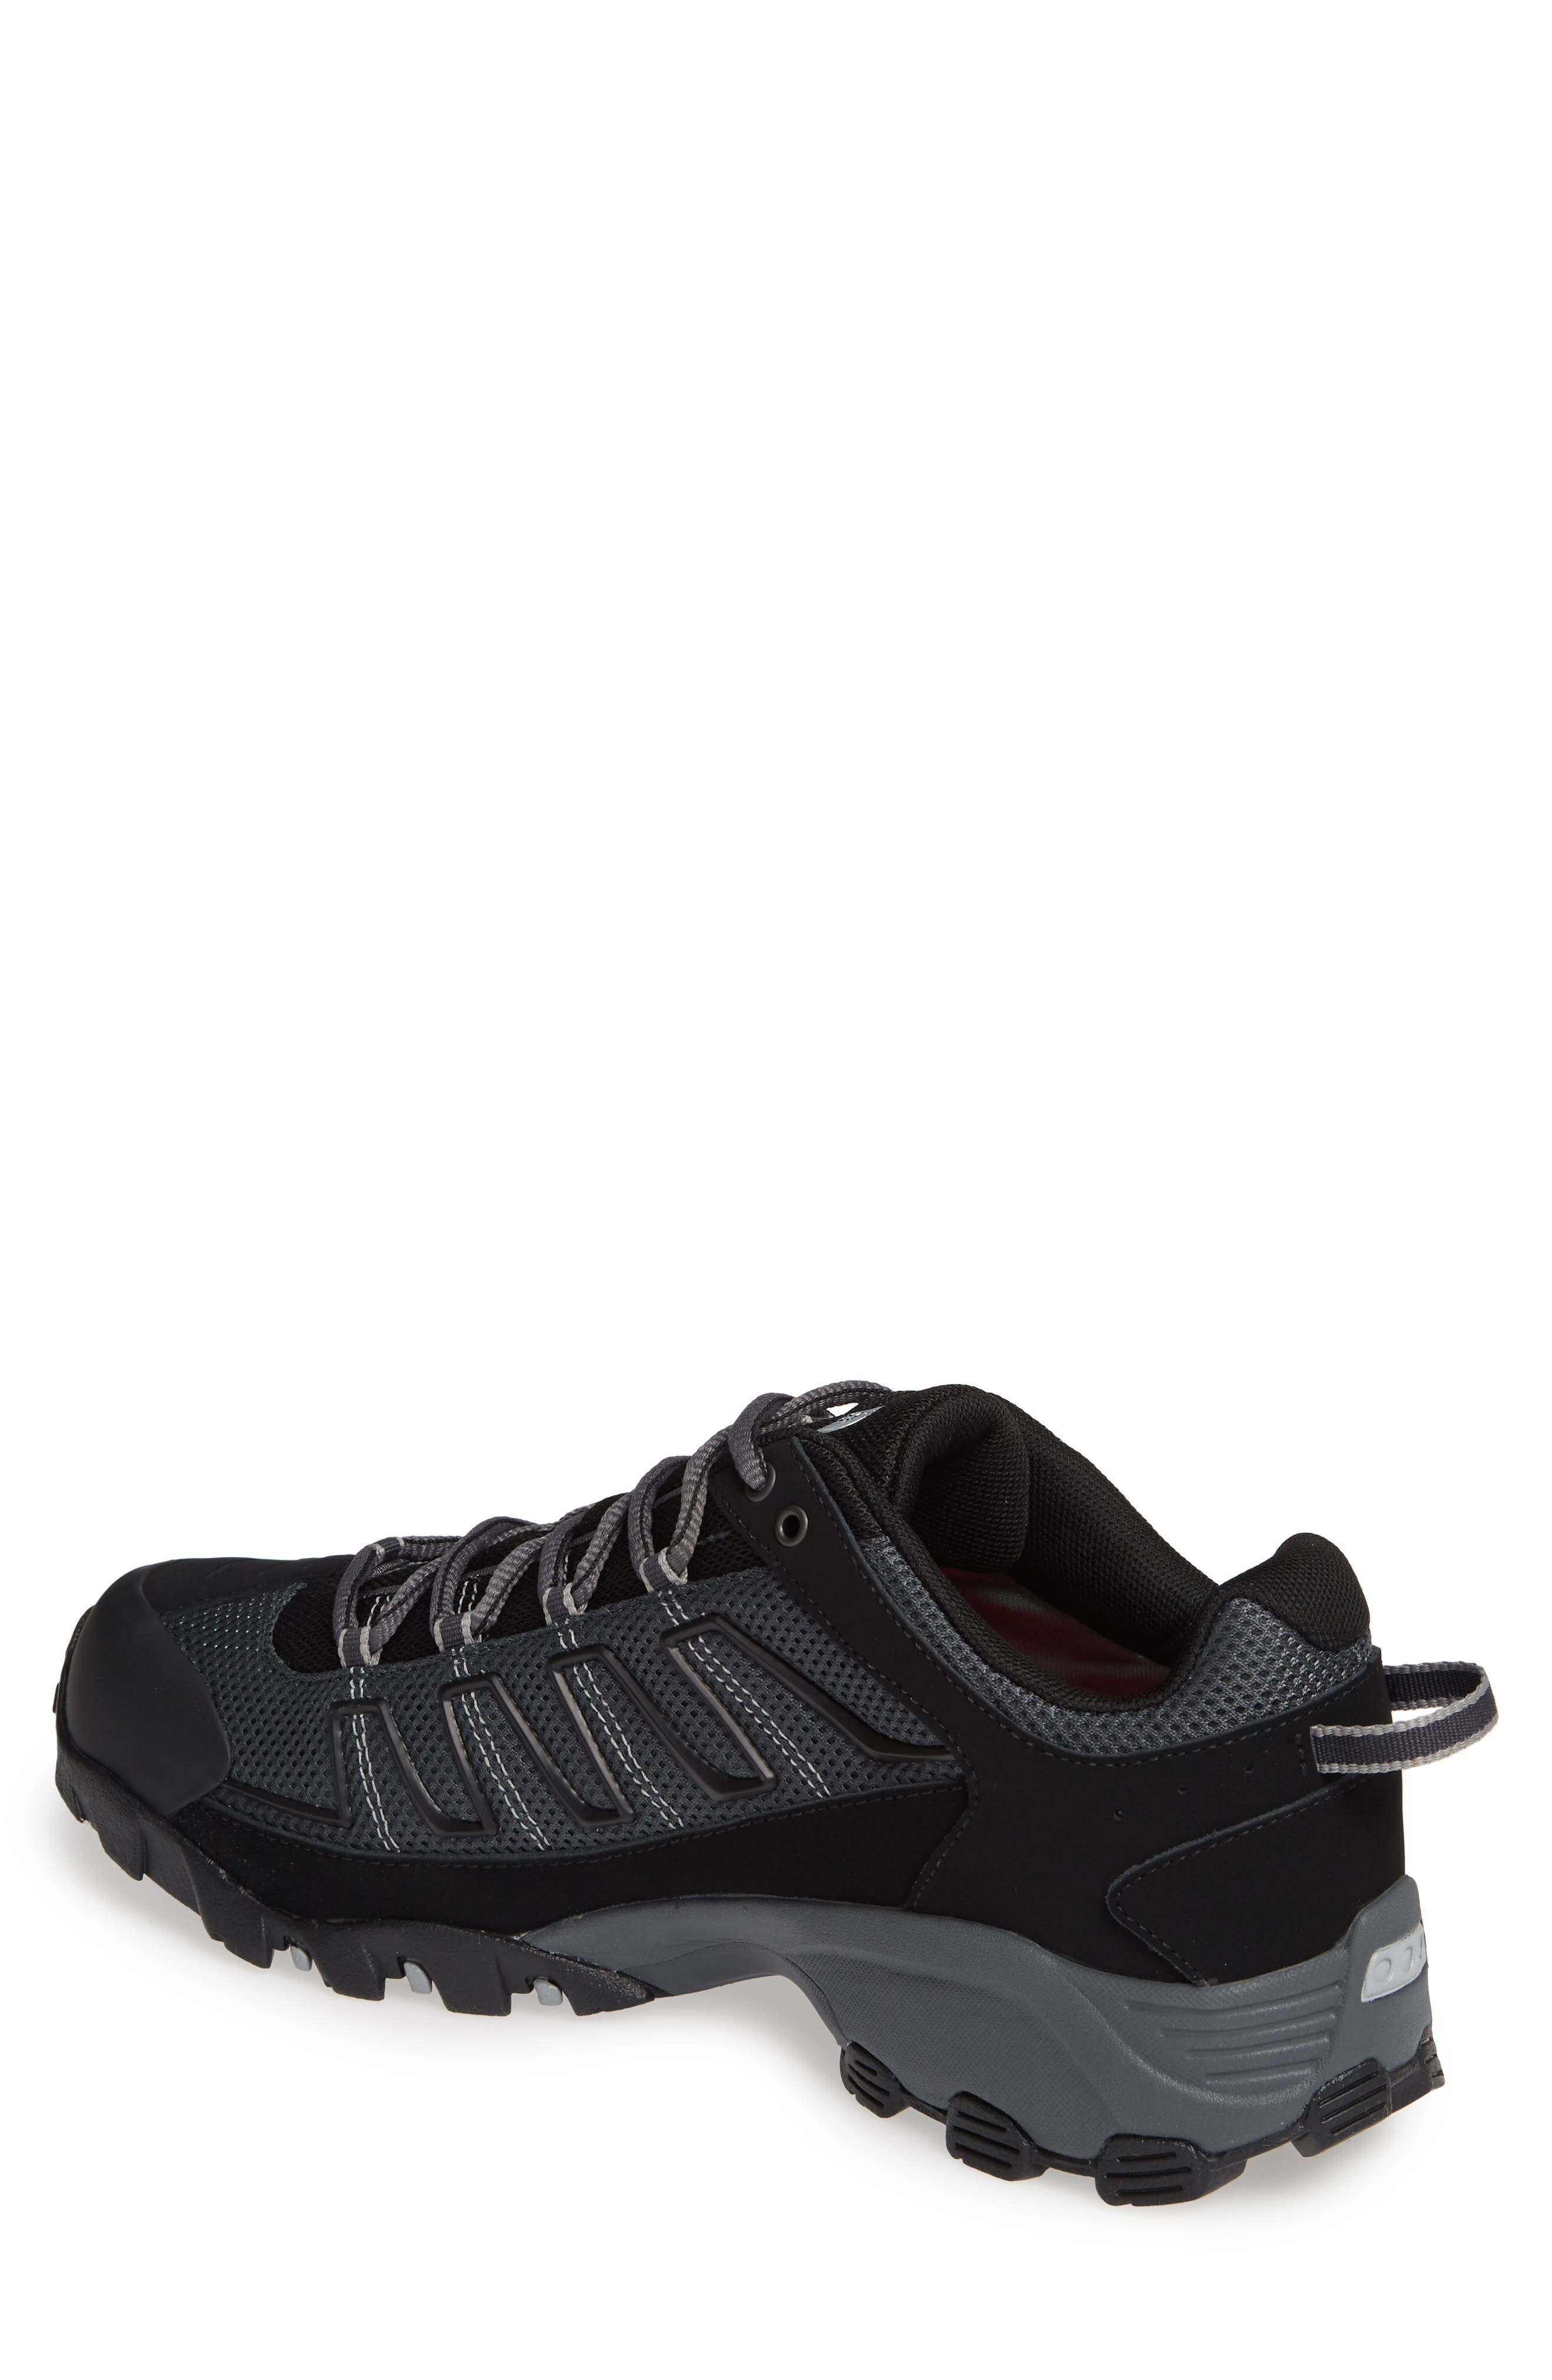 THE NORTH FACE, 'Ultra 109 GTX' Waterproof Running Shoe, Alternate thumbnail 2, color, BLACK/ GREY